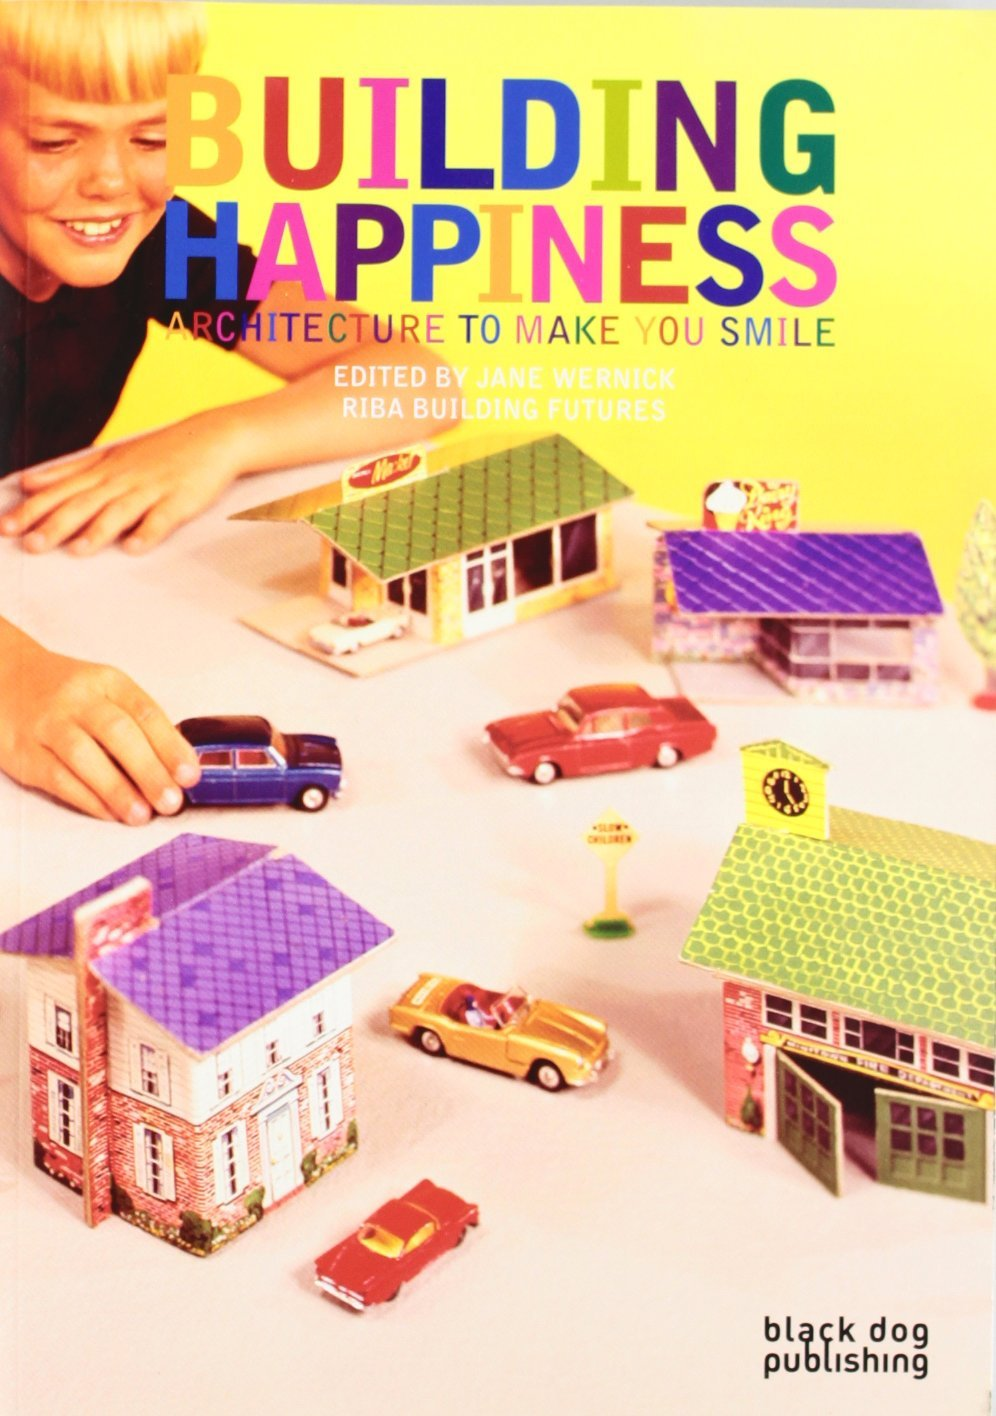 Building Happiness happiness толстовка